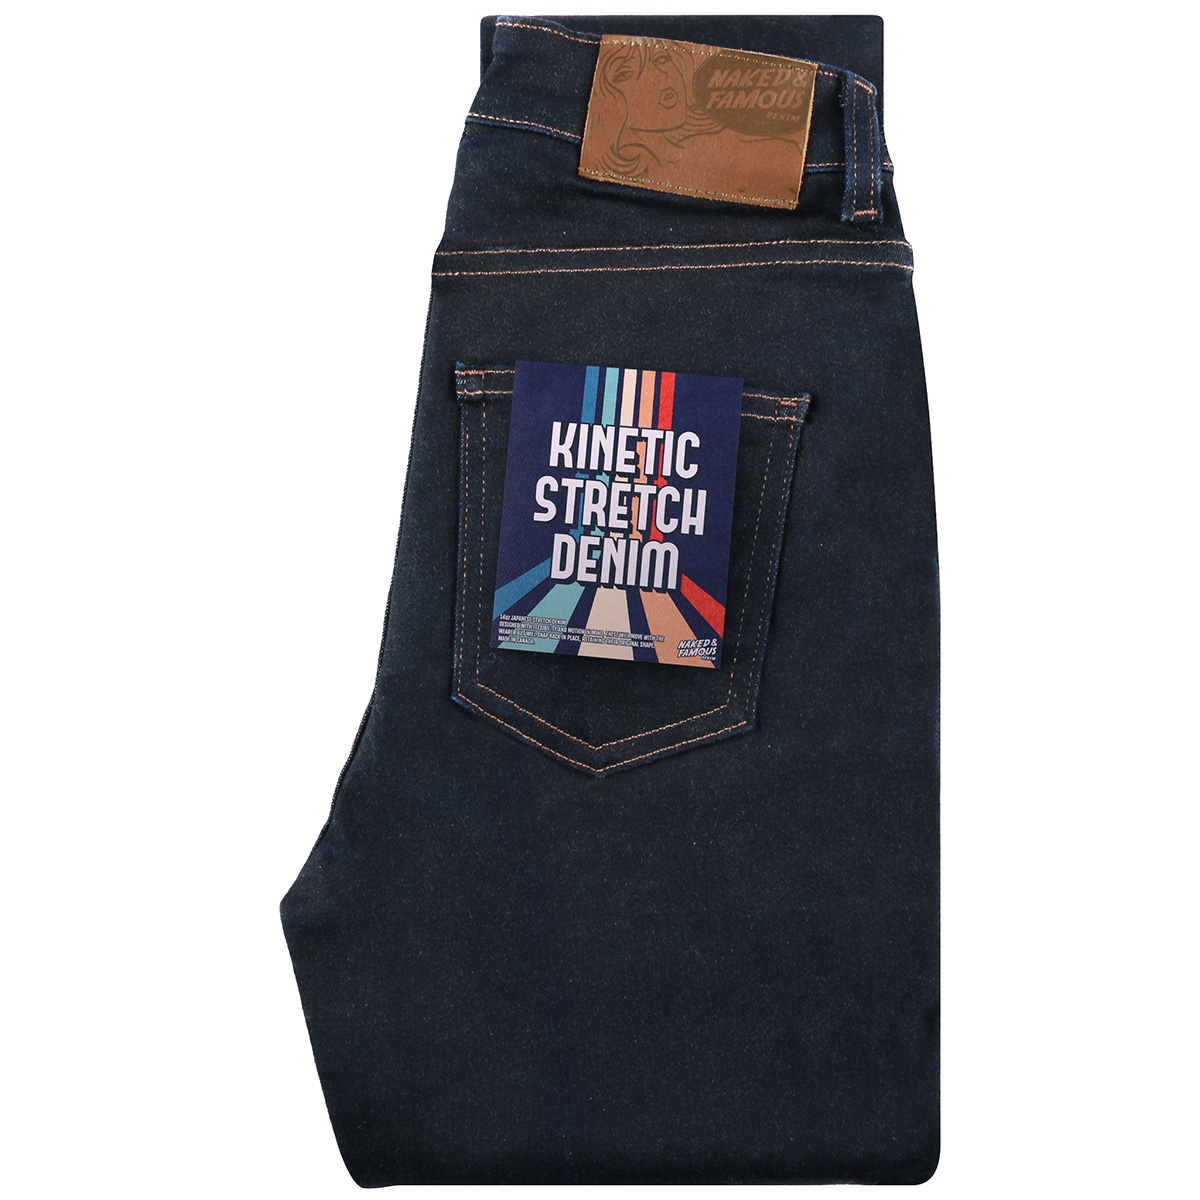 KINETIC STRETCH DENIM - High Skinny